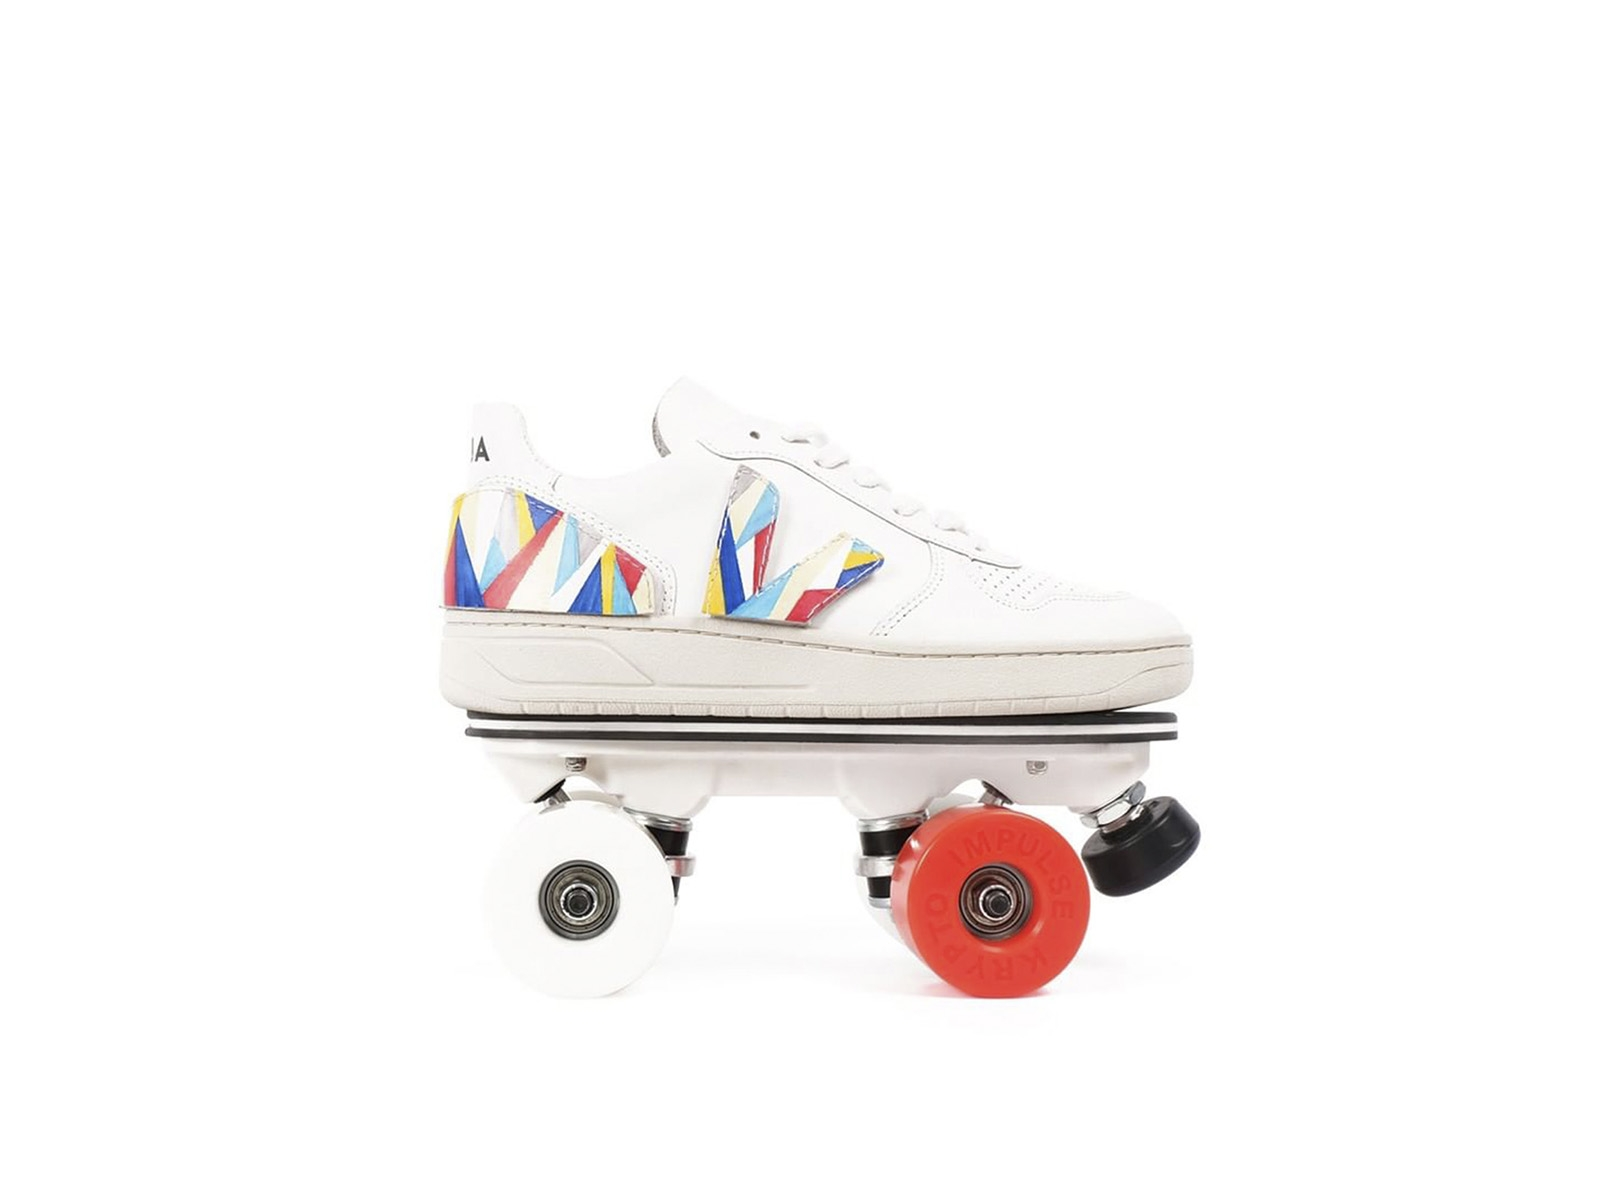 Blog - How to personalize my custom roller skate?